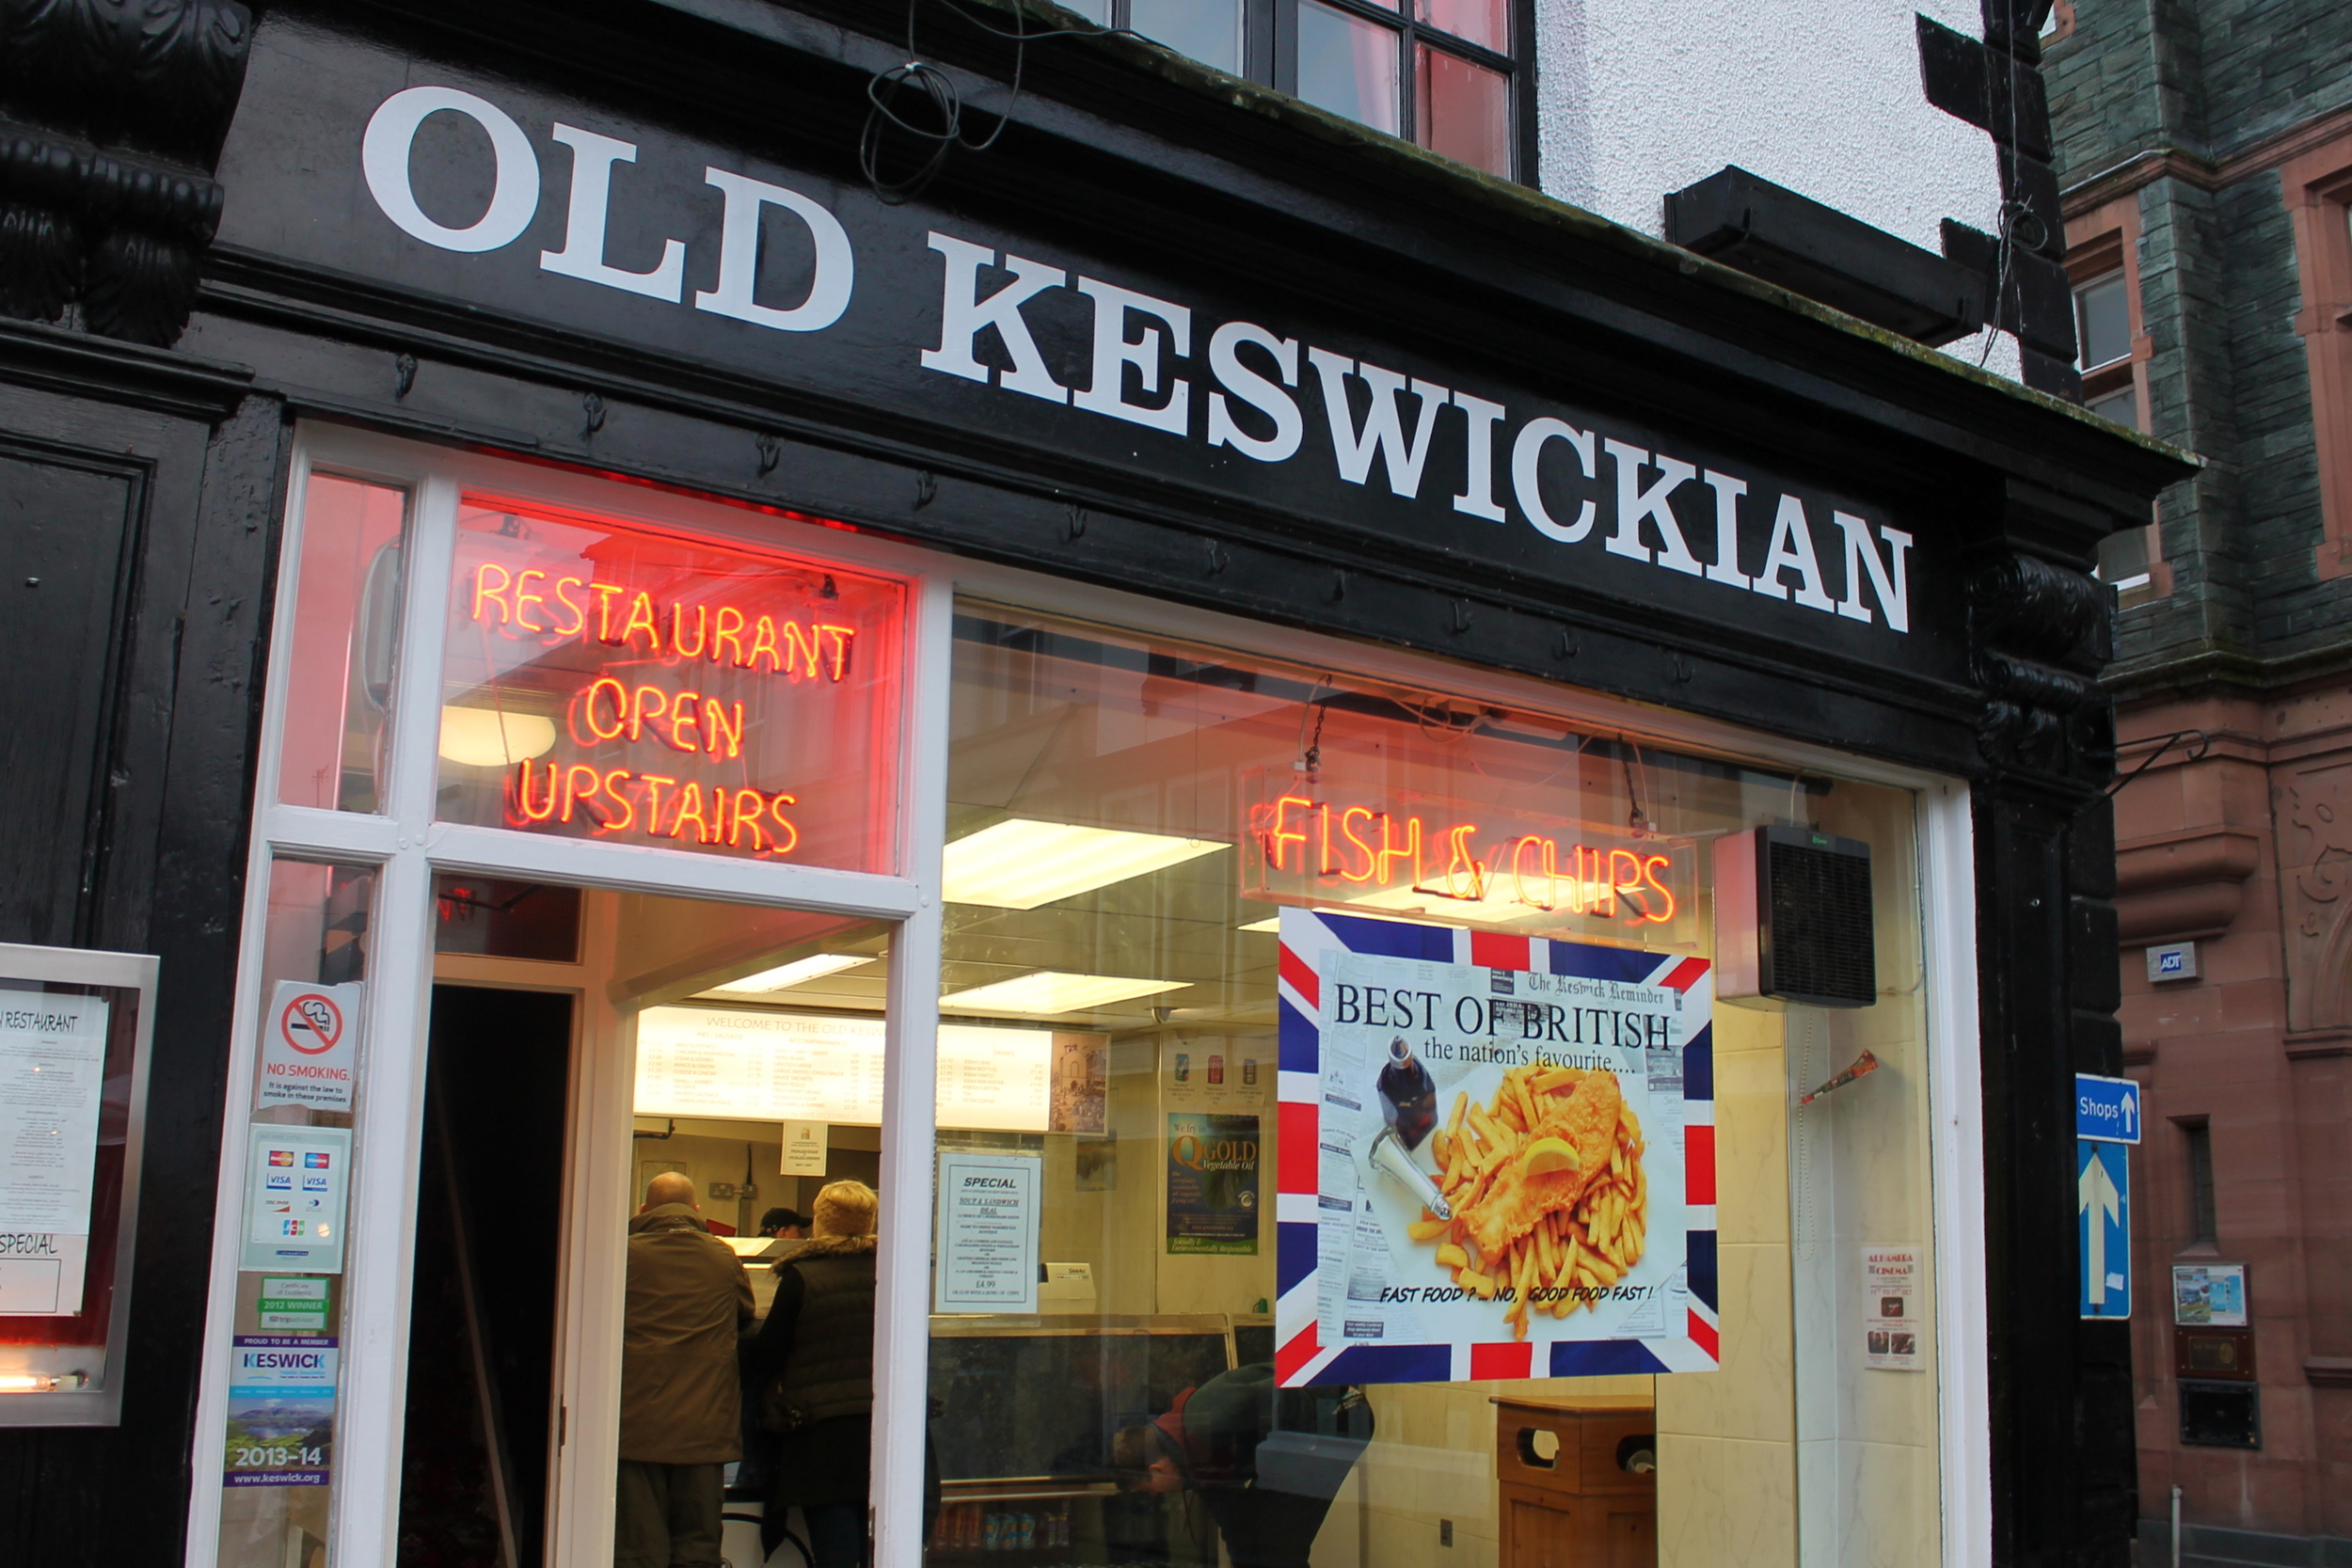 Kaci Nicole - Lake District - Old Keswickian Fish and Chips